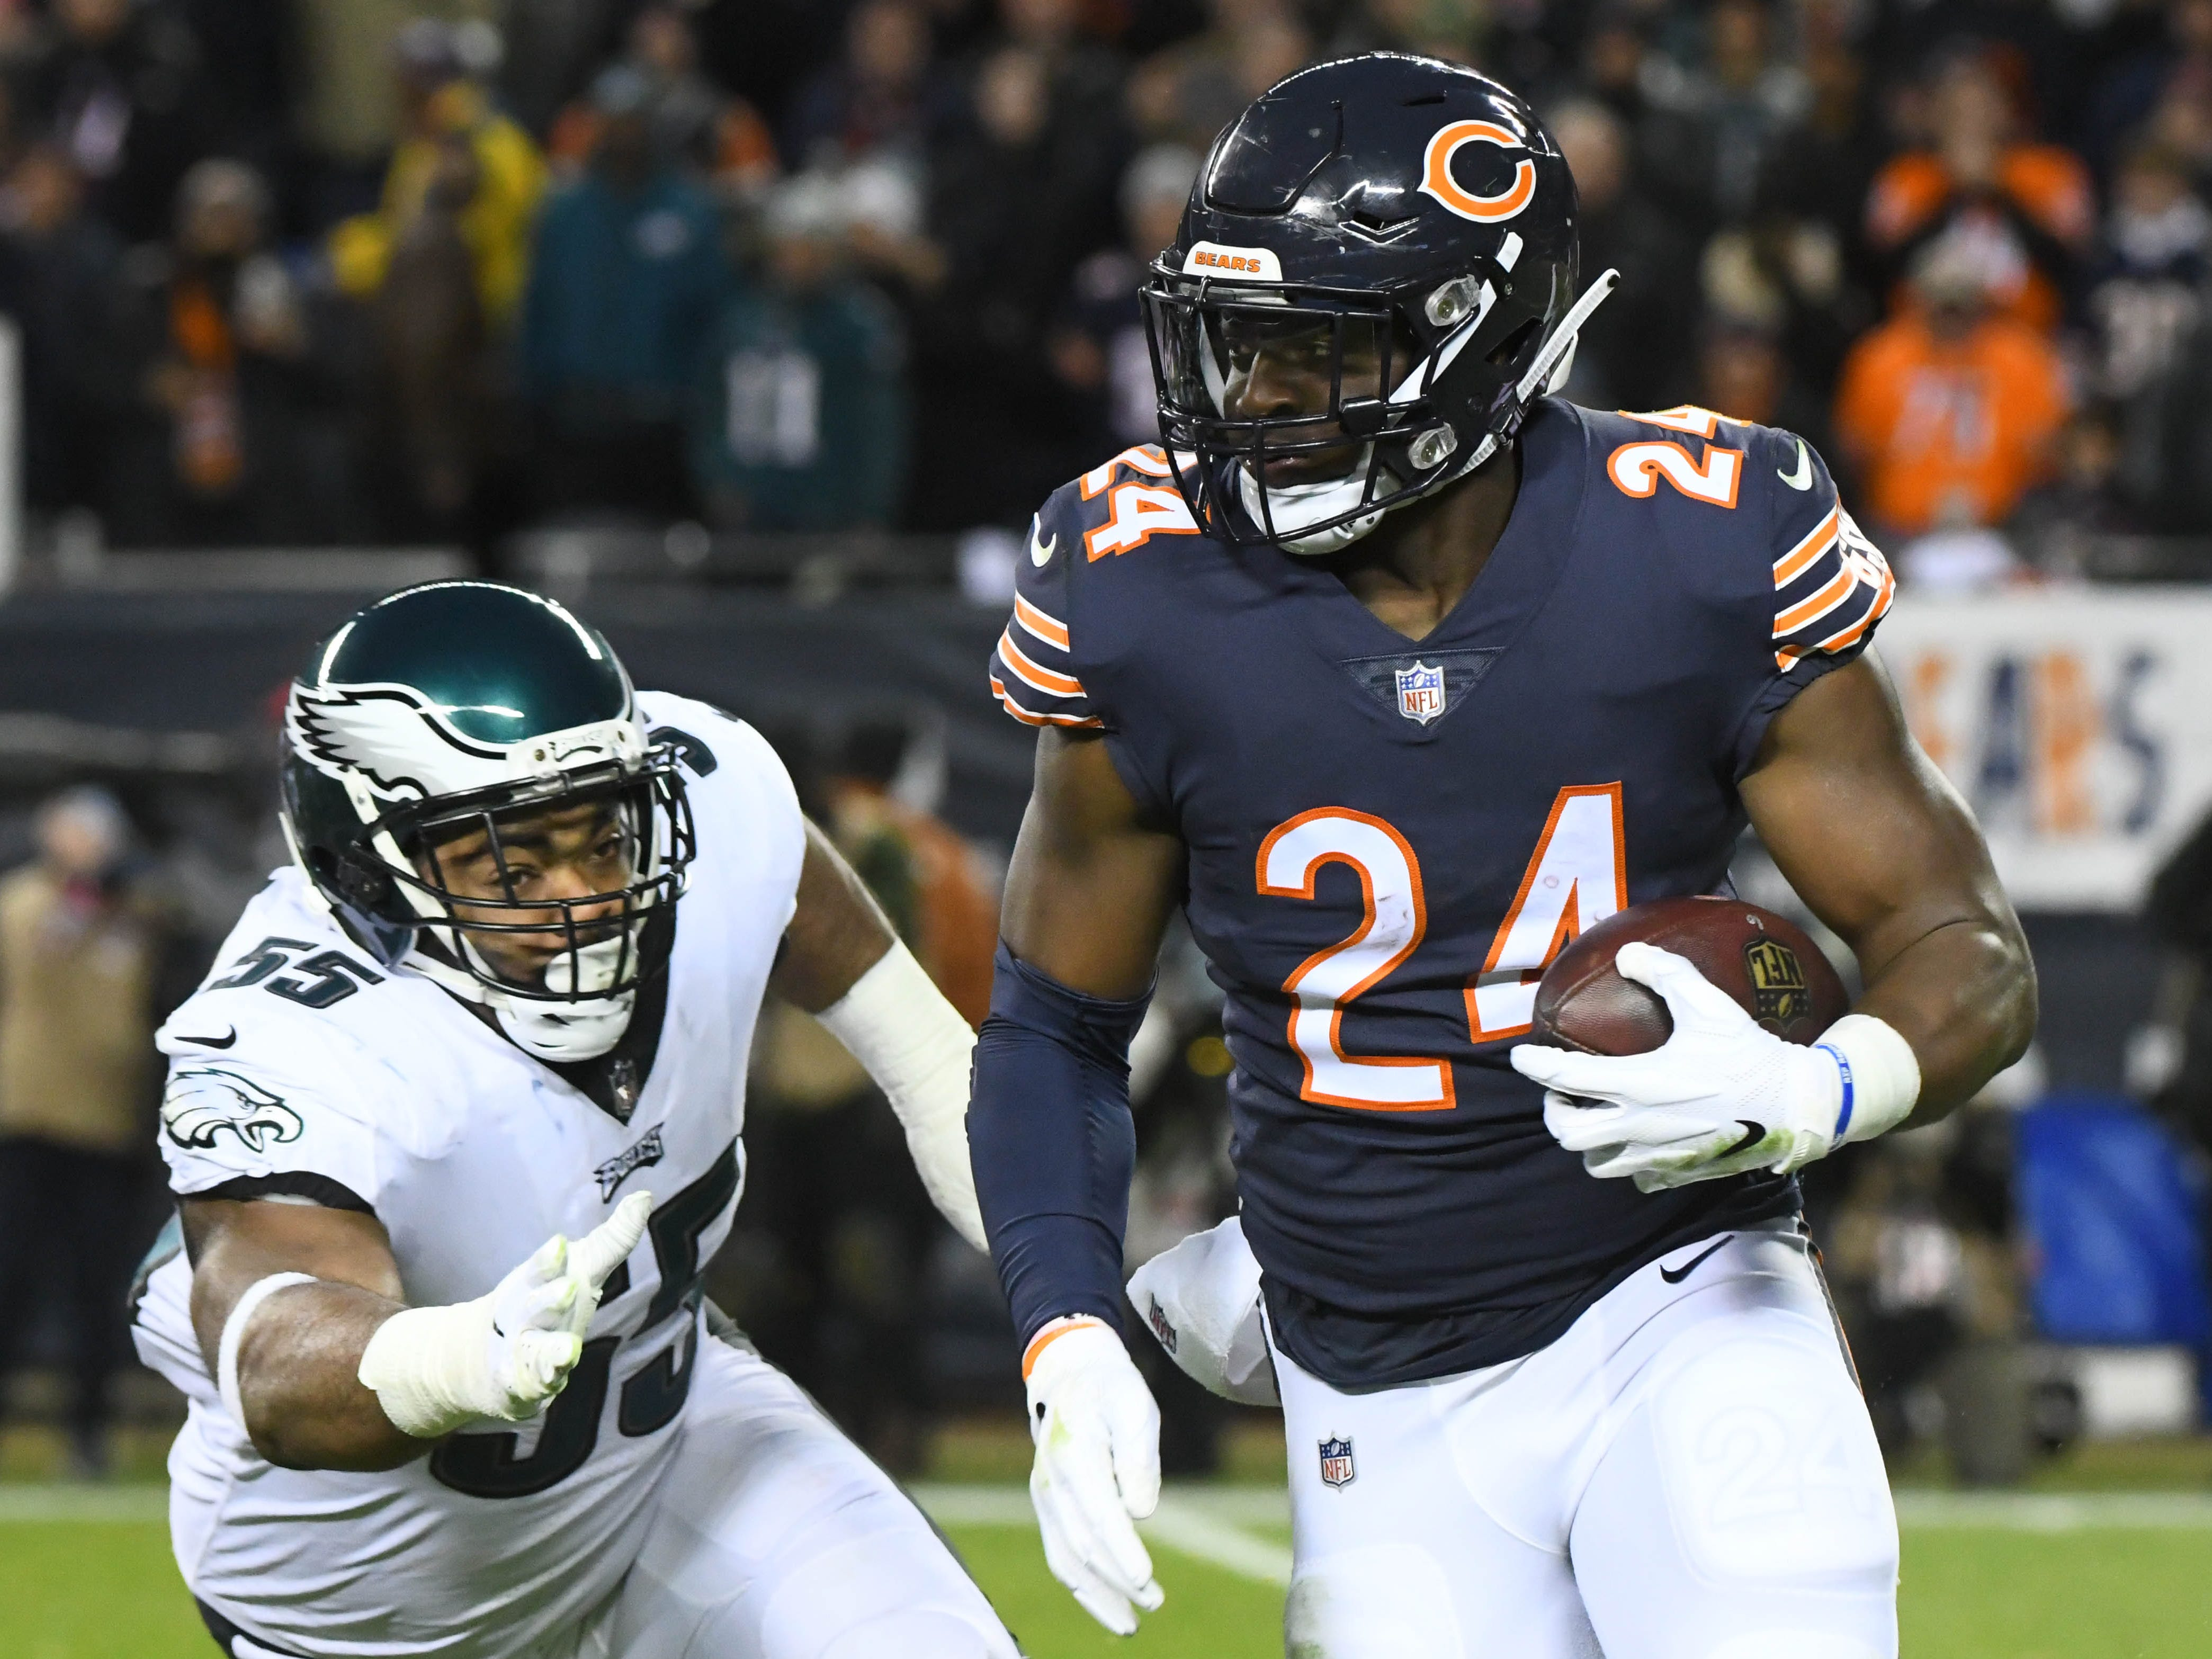 Bears running back Jordan Howard runs the ball against the Eagles in the first half of the NFC wild-card game at Soldier Field.